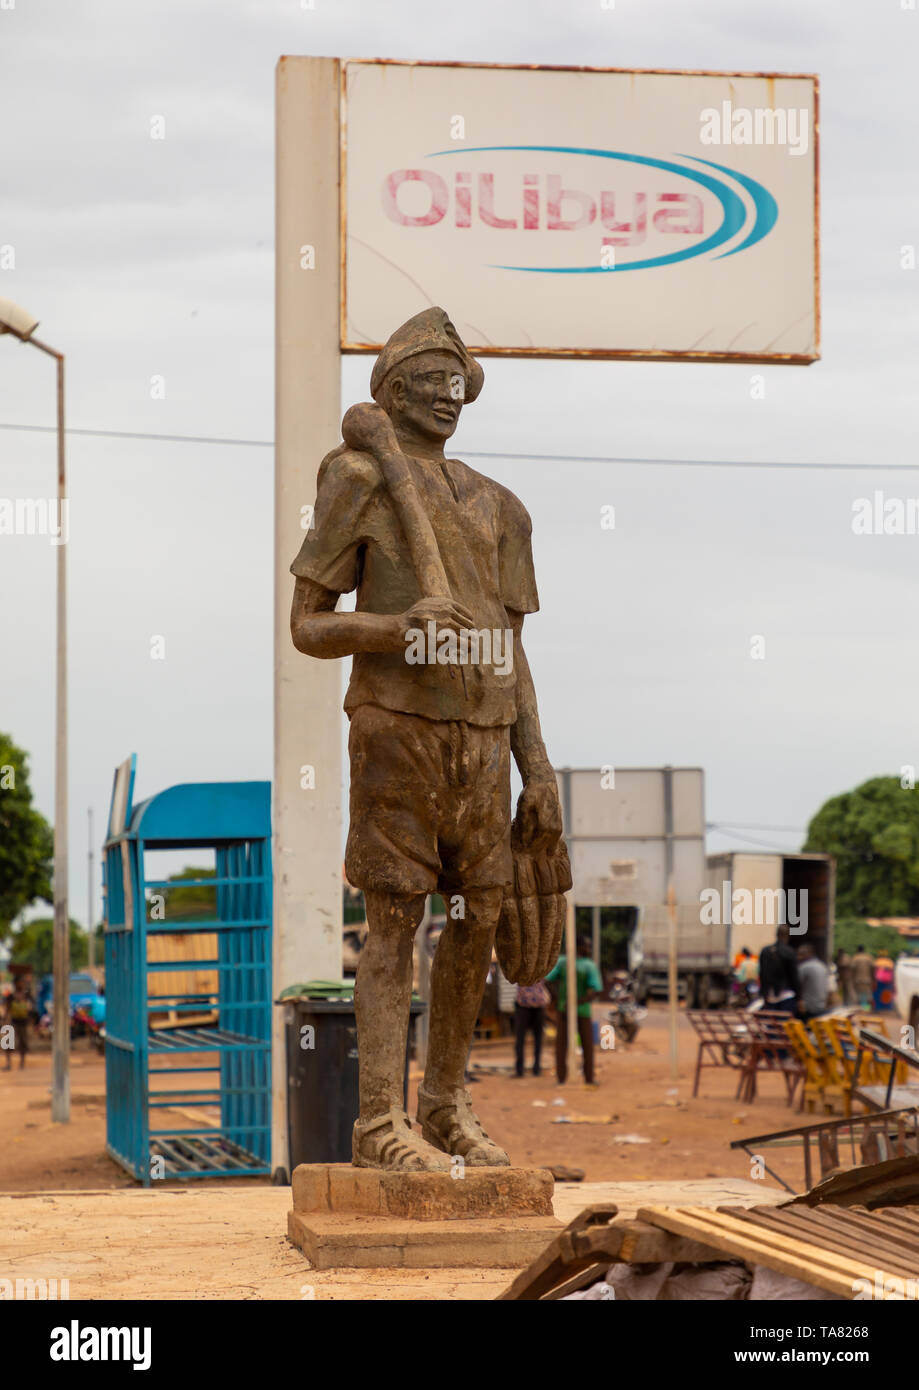 Statue in town at the entrance of a gas station, Savanes district, Kouto, Ivory Coast - Stock Image